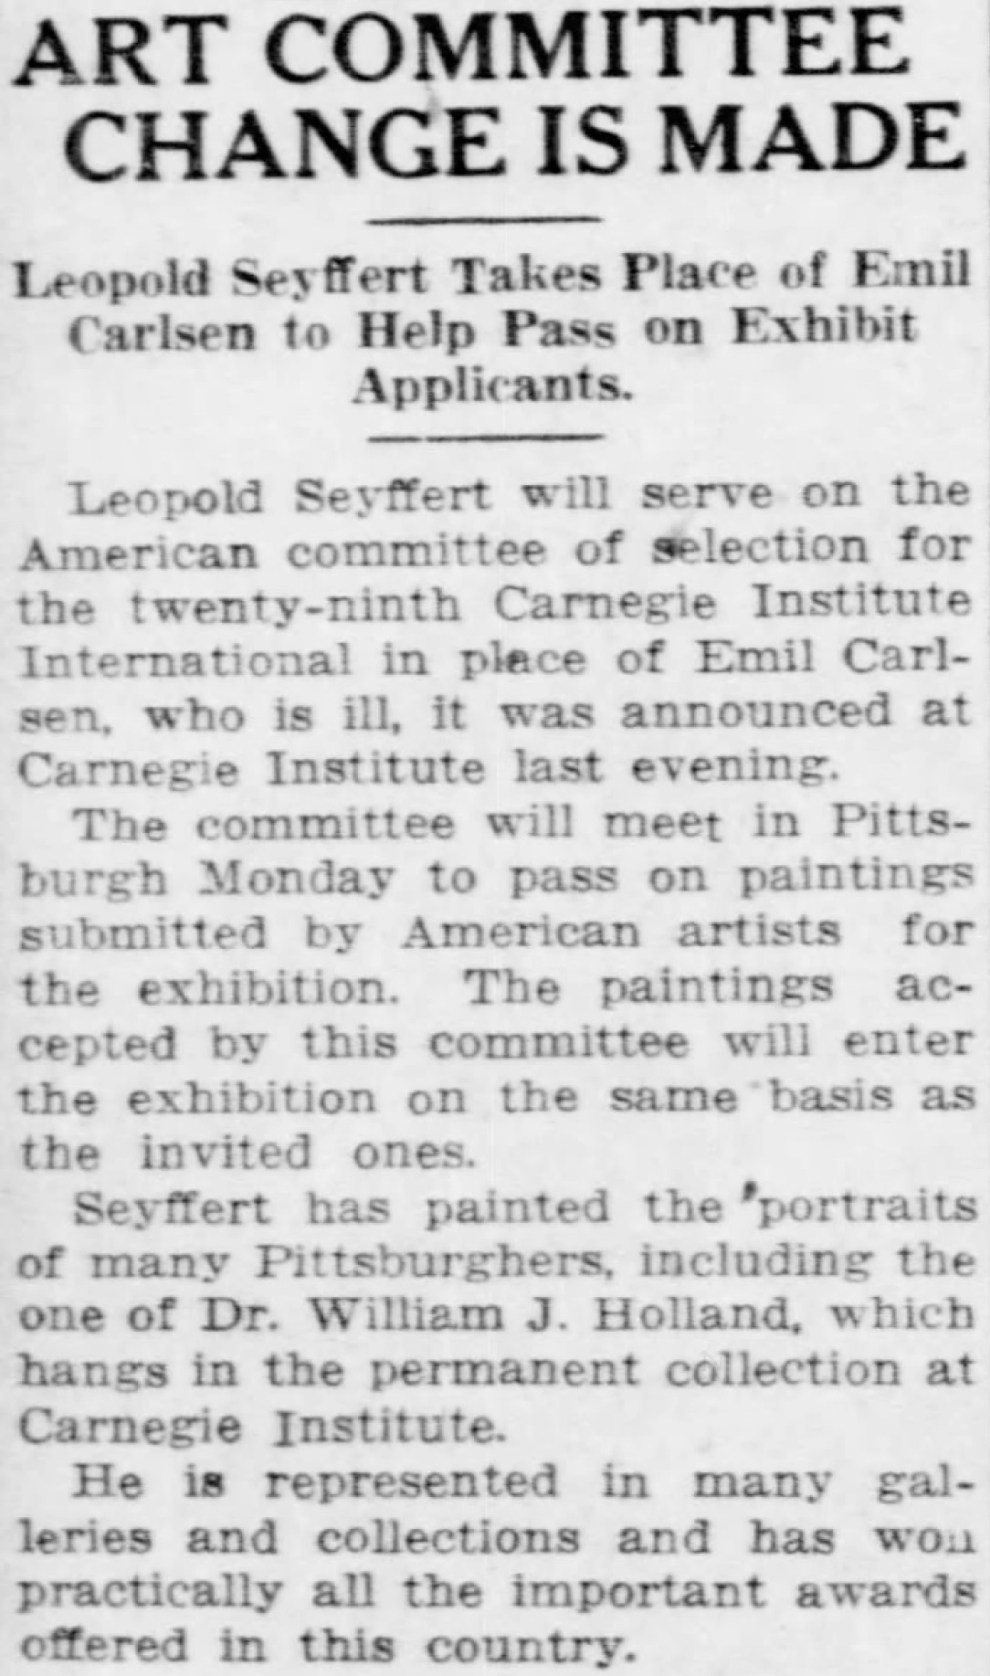 """Pittsburgh Post-Gazette, Pittsburgh, PA, """"Art committee change is made : Leopold Seyffert takes place of Emil Carlsen to help pass on exhibit applicants"""", Thursday, September 18, 1930, page 12, not illustrated"""